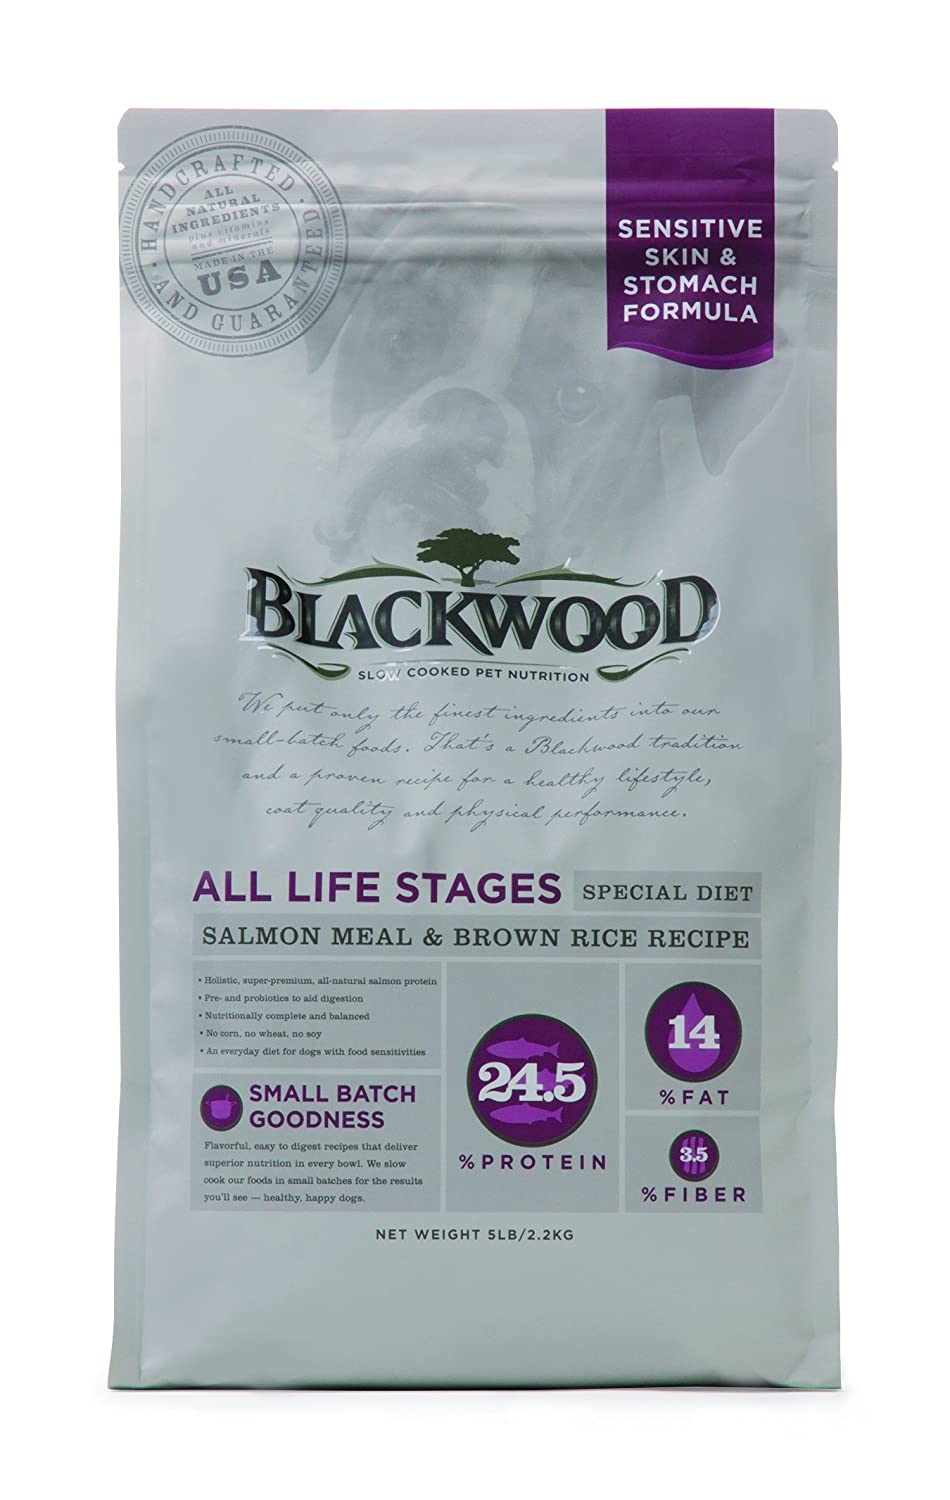 Blackwood Pet Sensitive Skin and Stomach Dog Food Made in USA Special Diet Dry Dog Food to Solve Food Sensitivities Naturally , Ideal For All Life Stages